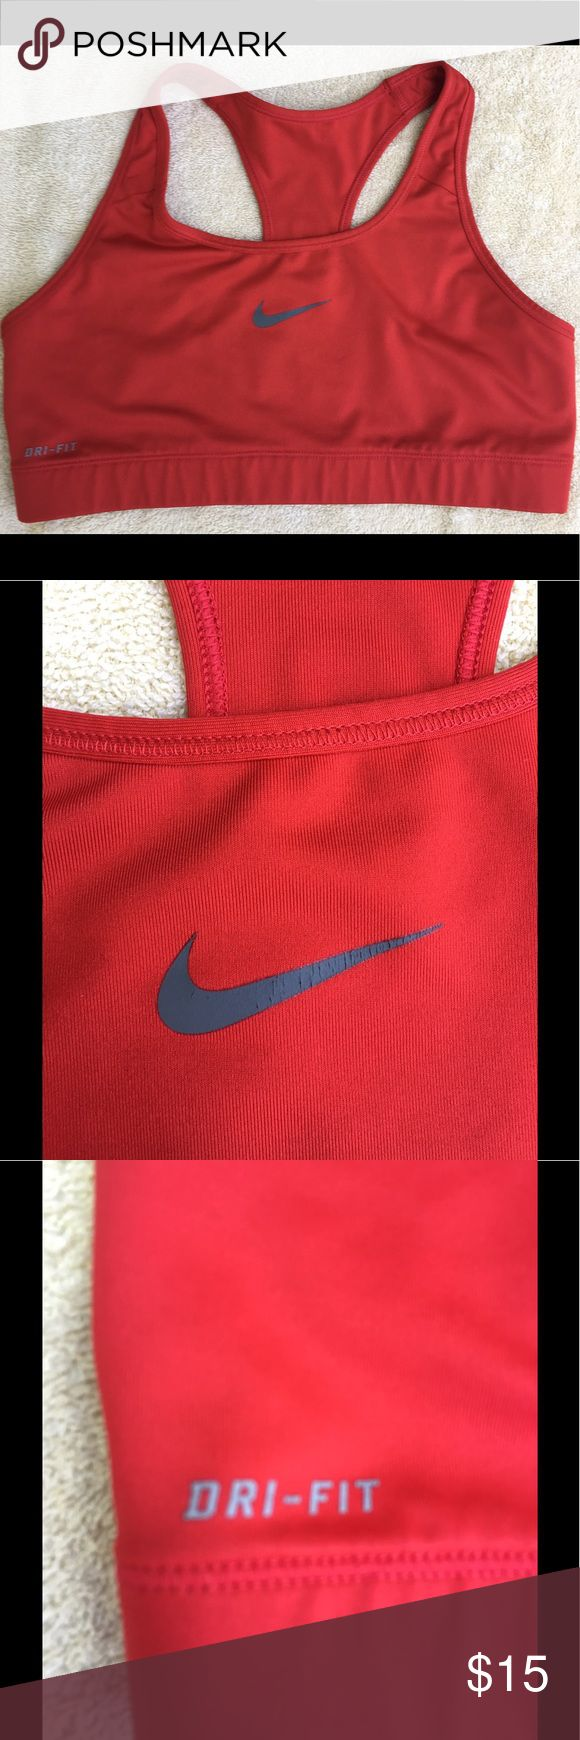 Nike Red Dri Fit Sports bra Nike red sports bra with gray Swoosh Logo. Dri fit moisture wicking material. Chest elastic 28 inches unstretched. in good condition no rips's, no stains, no tears. Nike Intimates & Sleepwear Bras